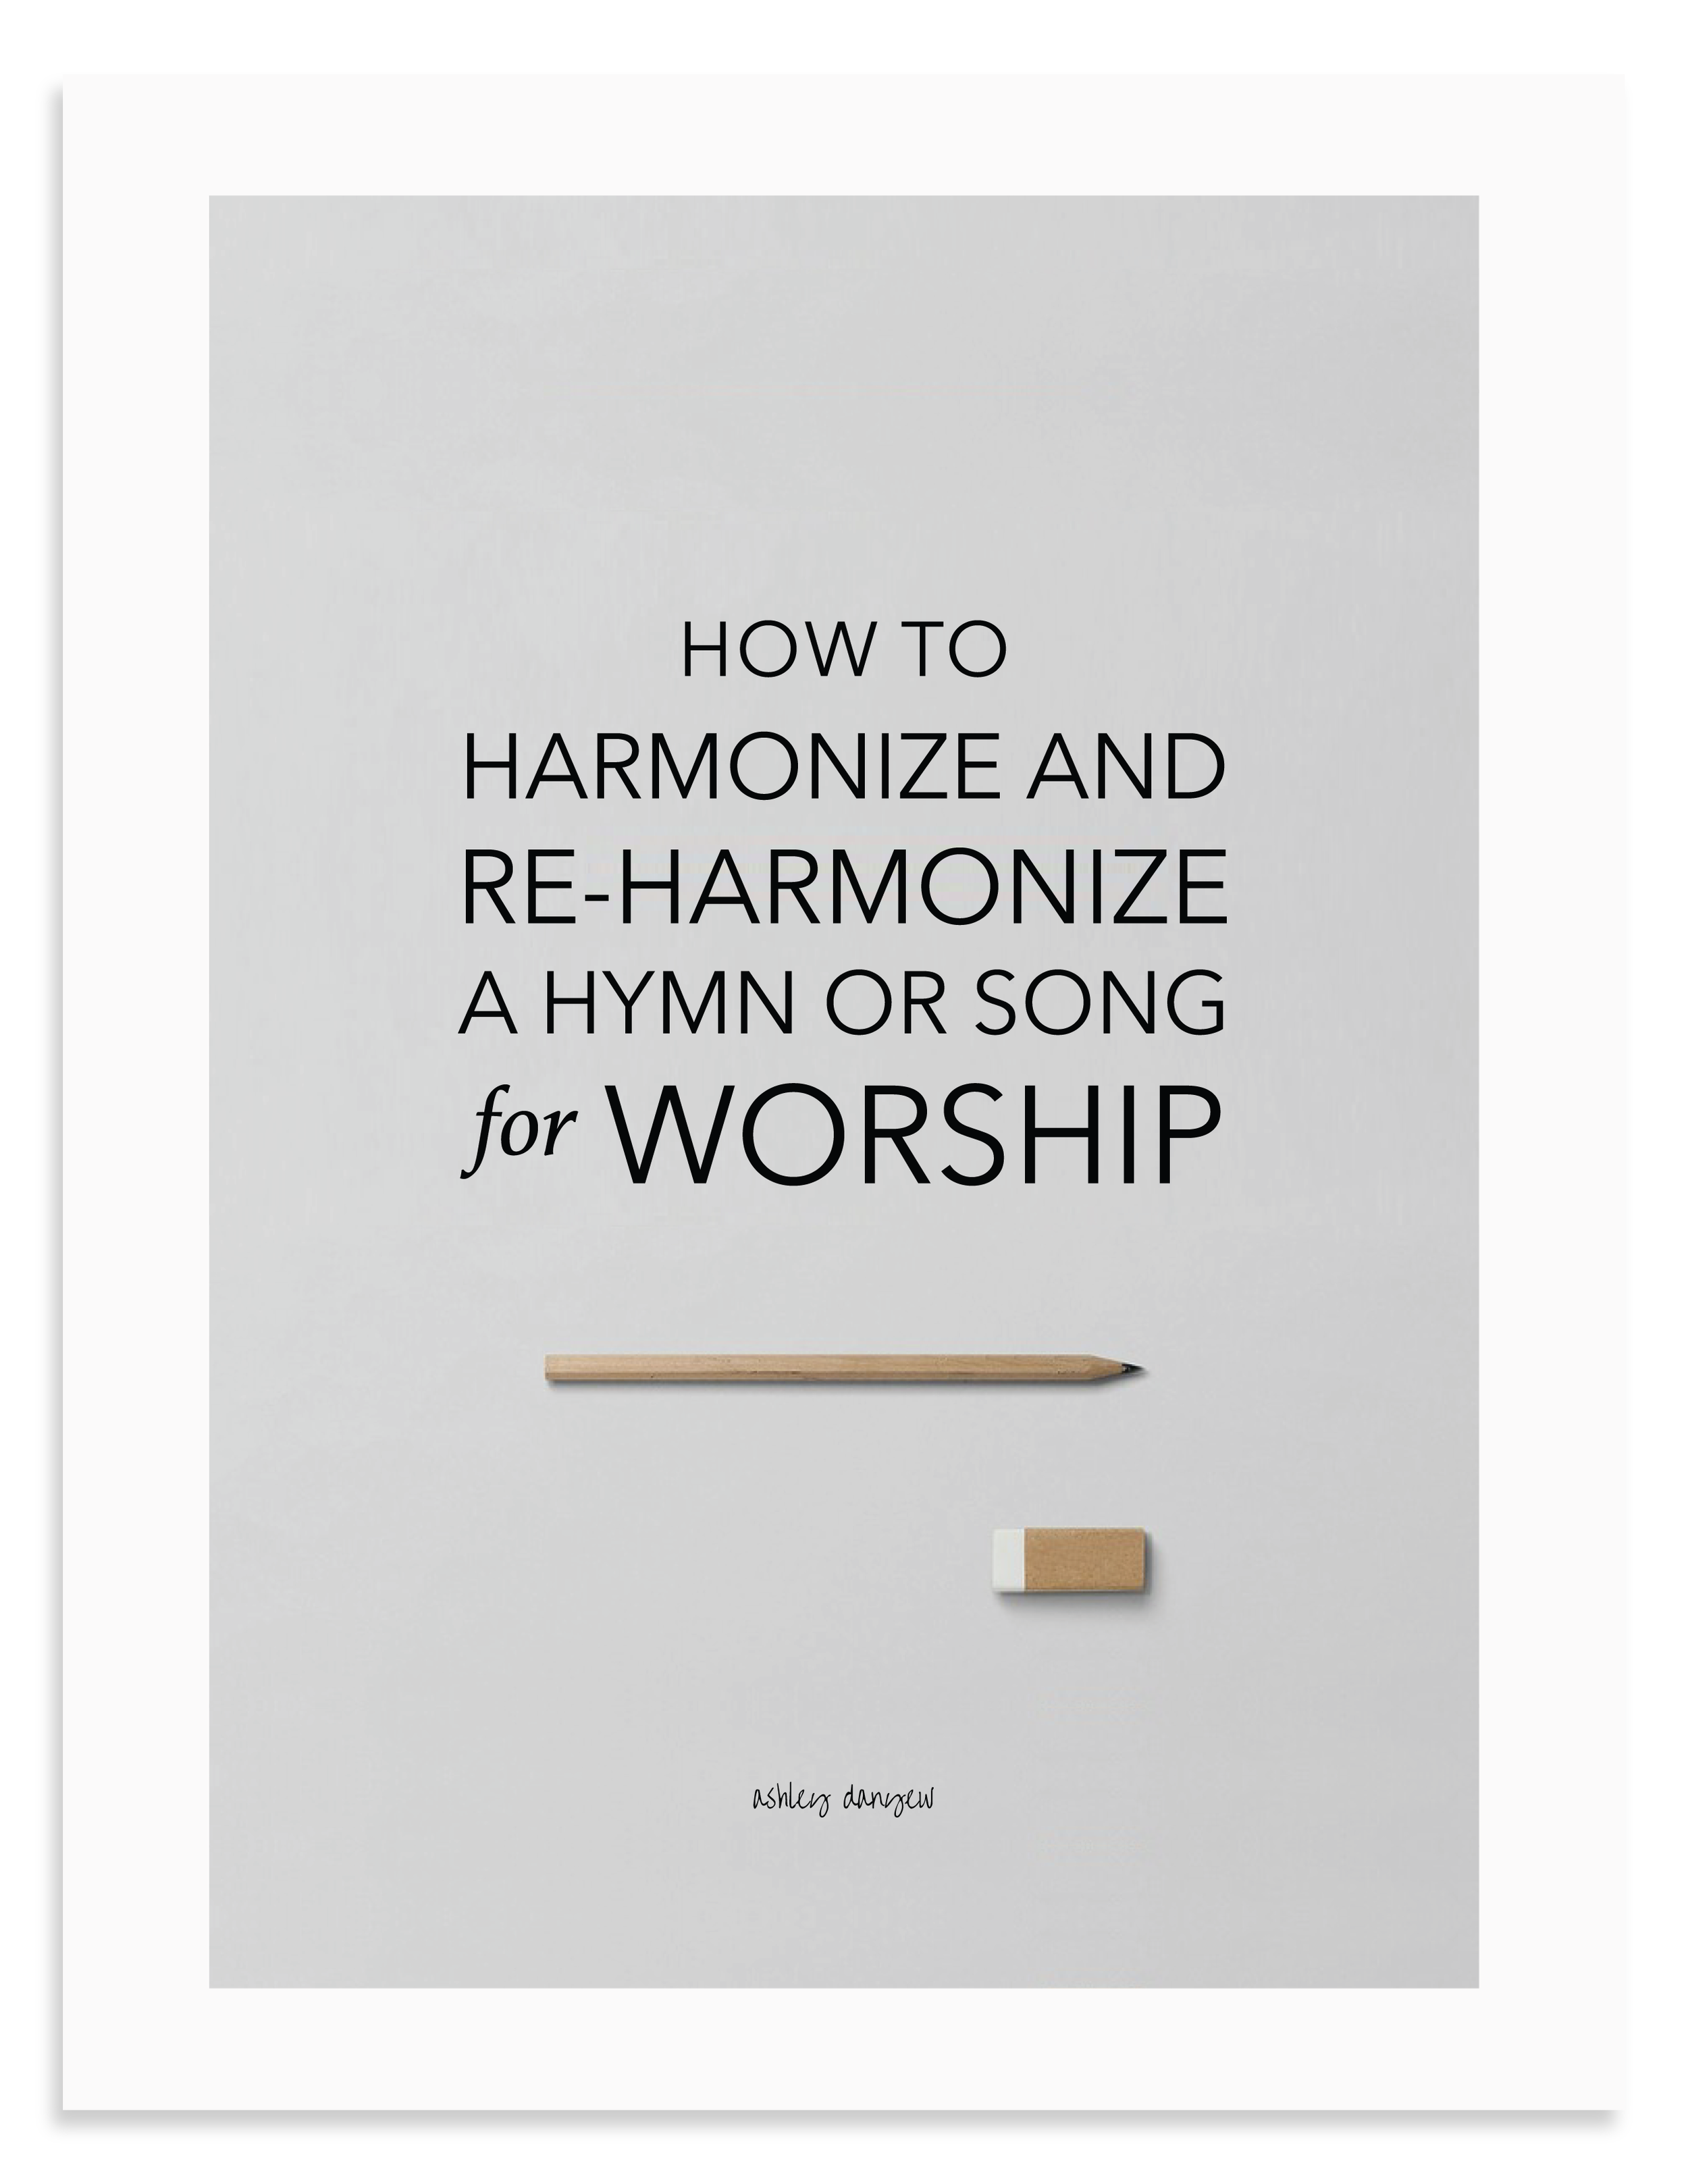 How to Harmonize and Re-Harmonize a Hymn or Song for Worship - Free Workbook by Ashley Danyew.png